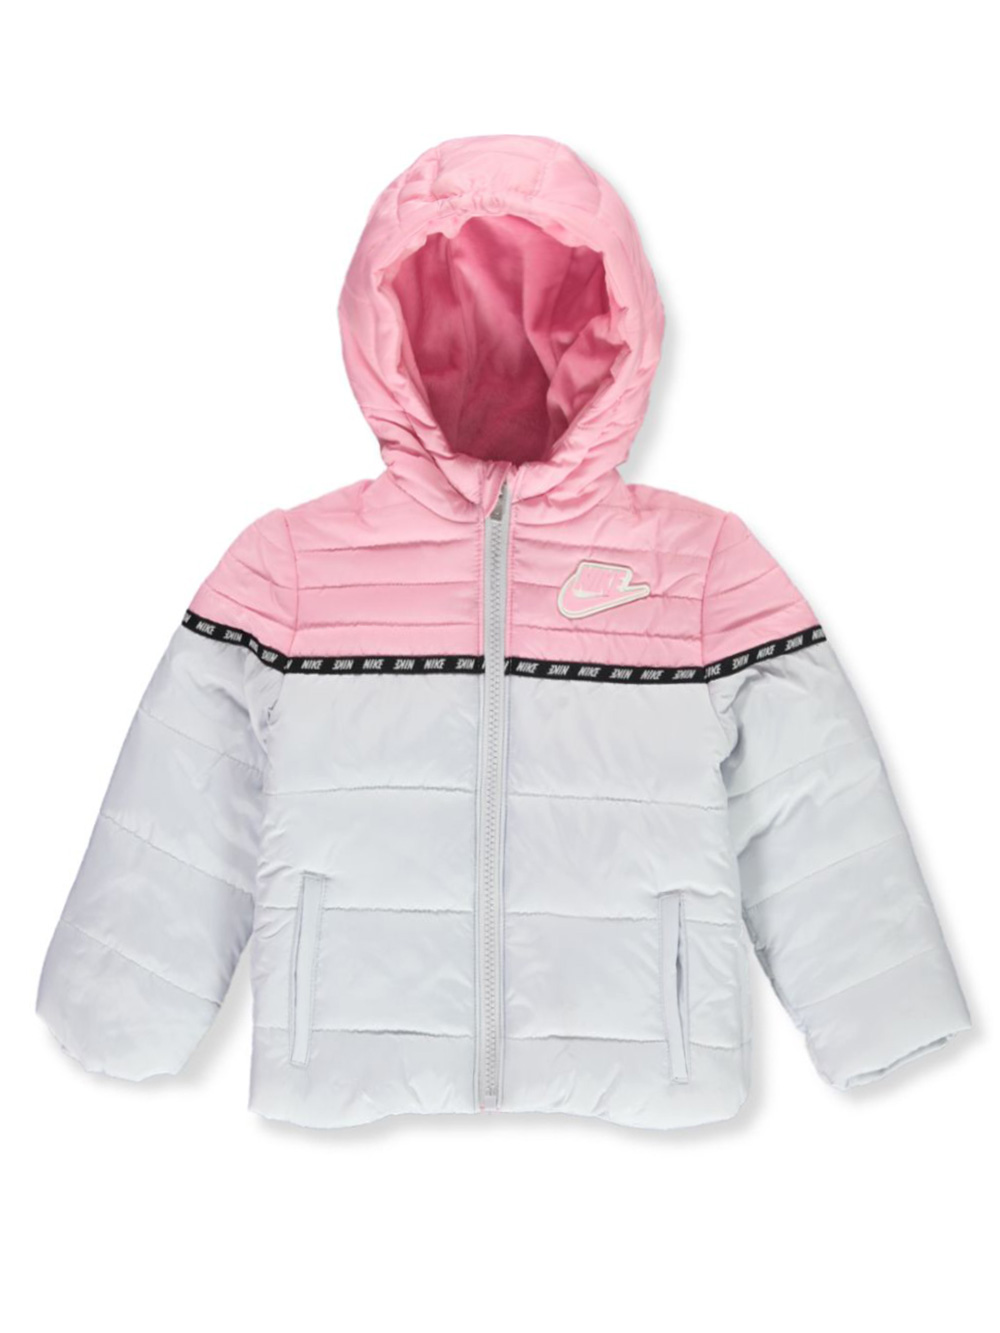 Girls Pure Platinum Jackets and Coats